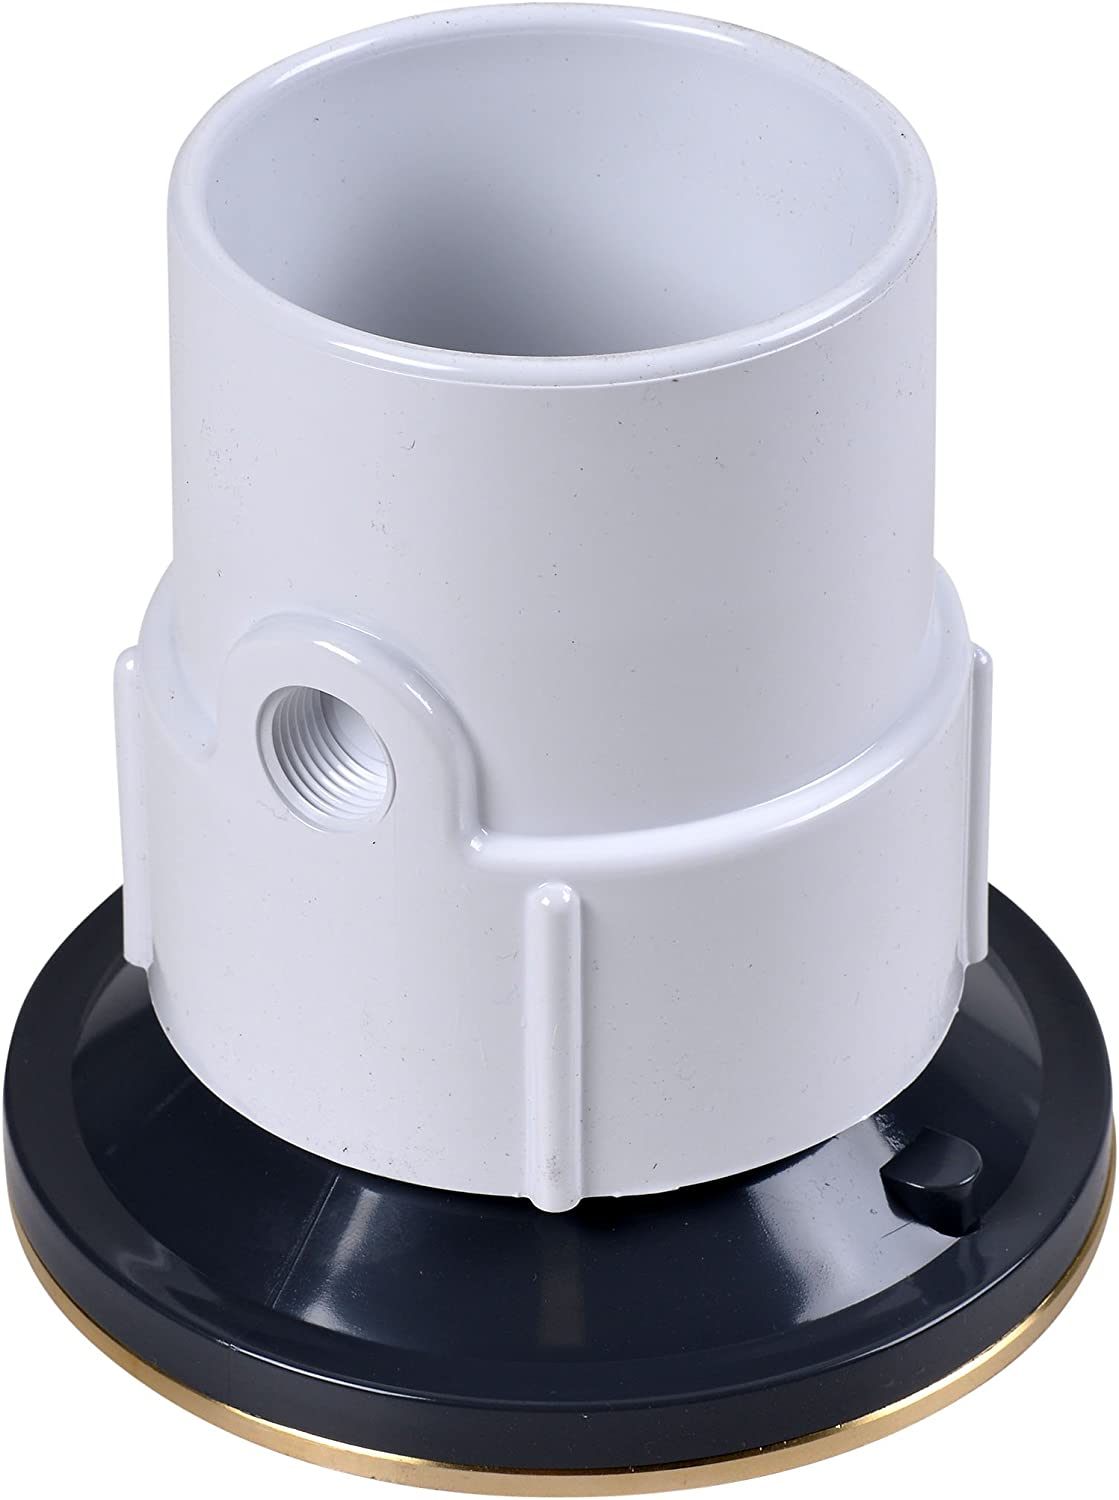 2-Inch Oatey 82332 ABS Adjustable Commercial Drain with 6-Inch Cast NI Grate and Round Top